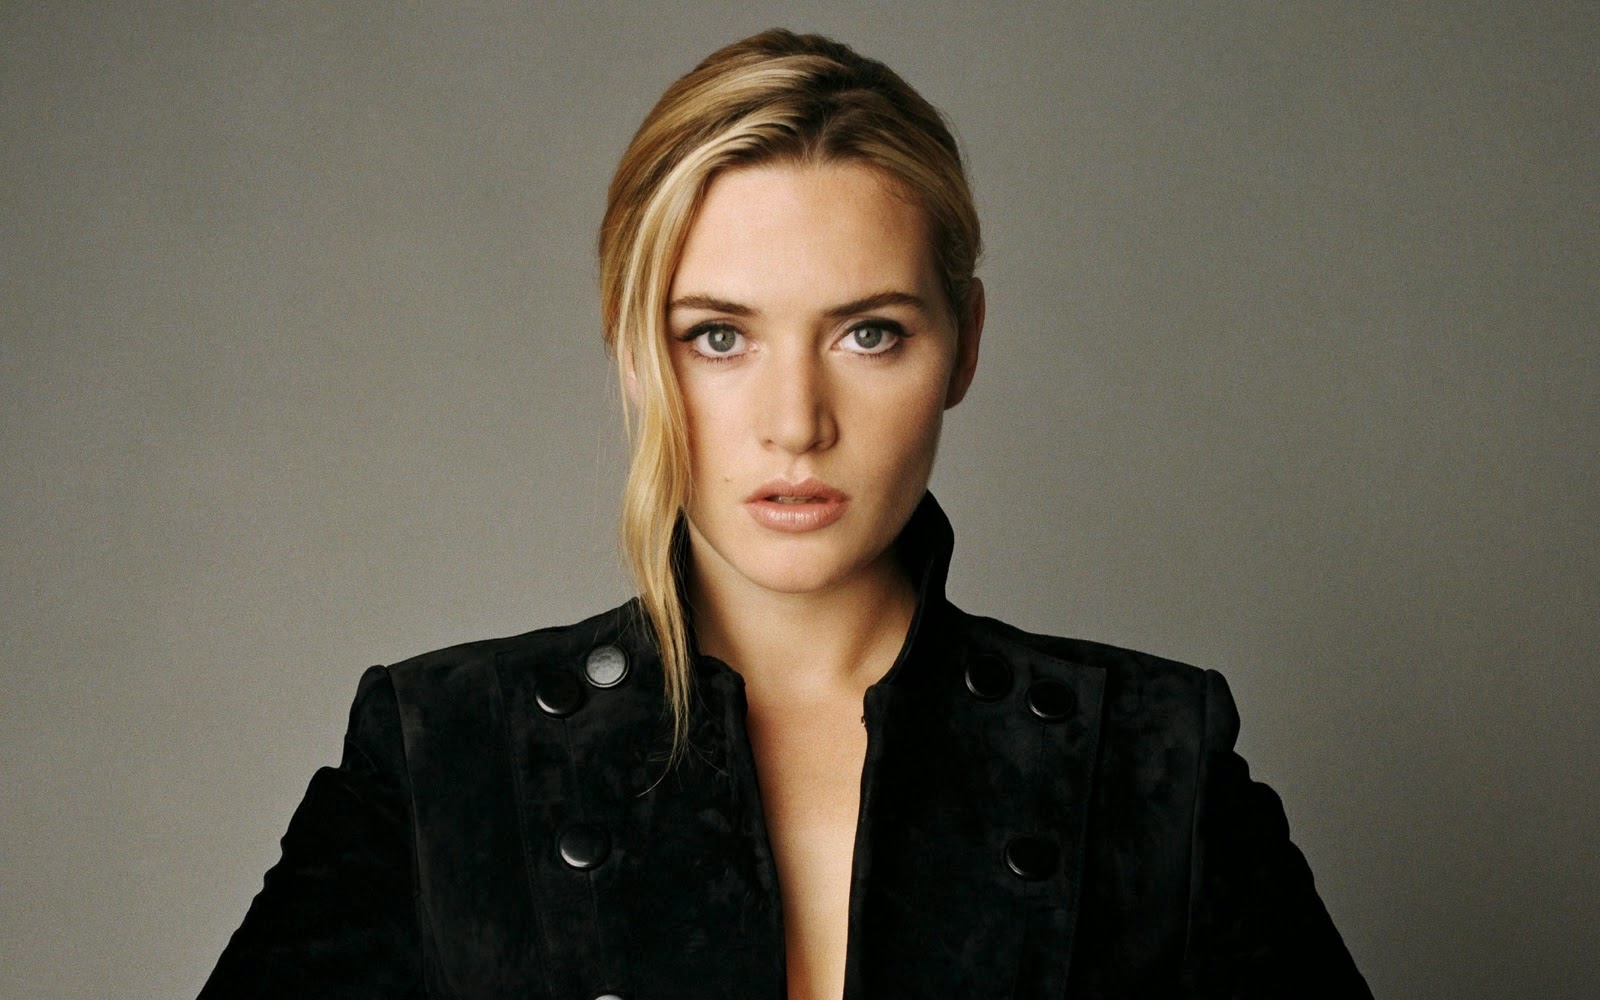 sexy Actress Kate winslet Photo